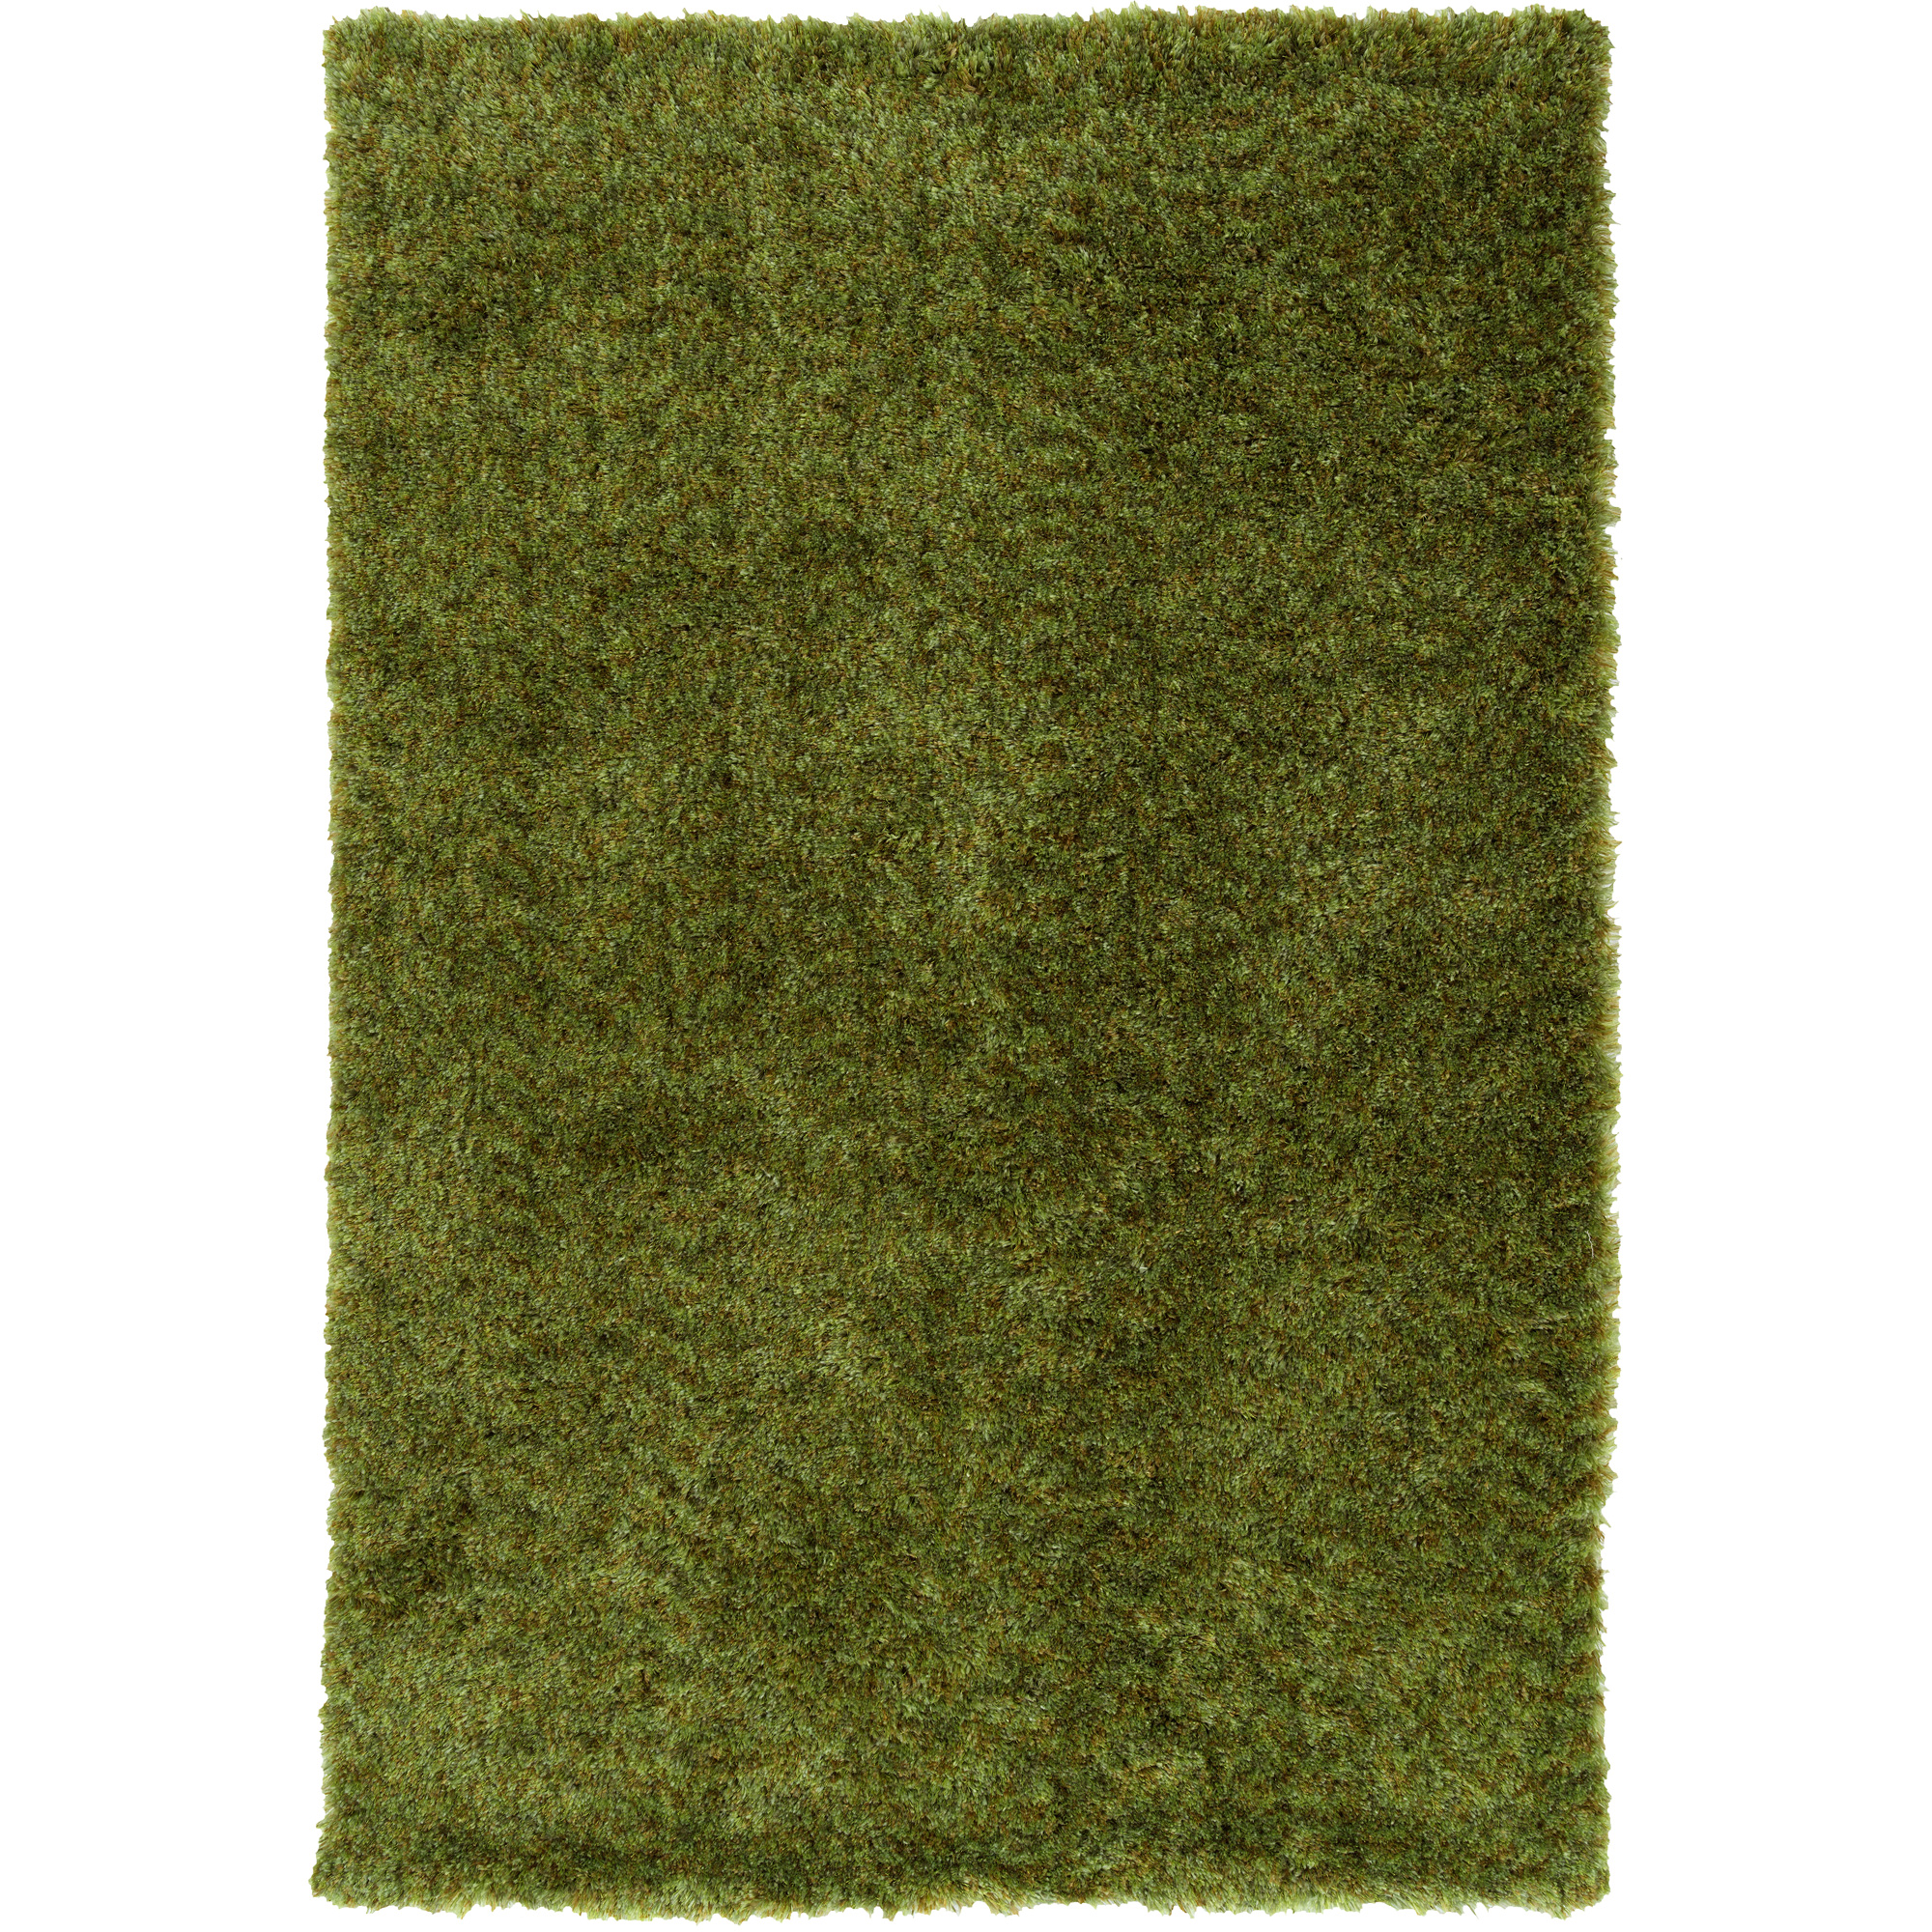 Dalyn Rug | Cabot Moss 5x8 Area Rug